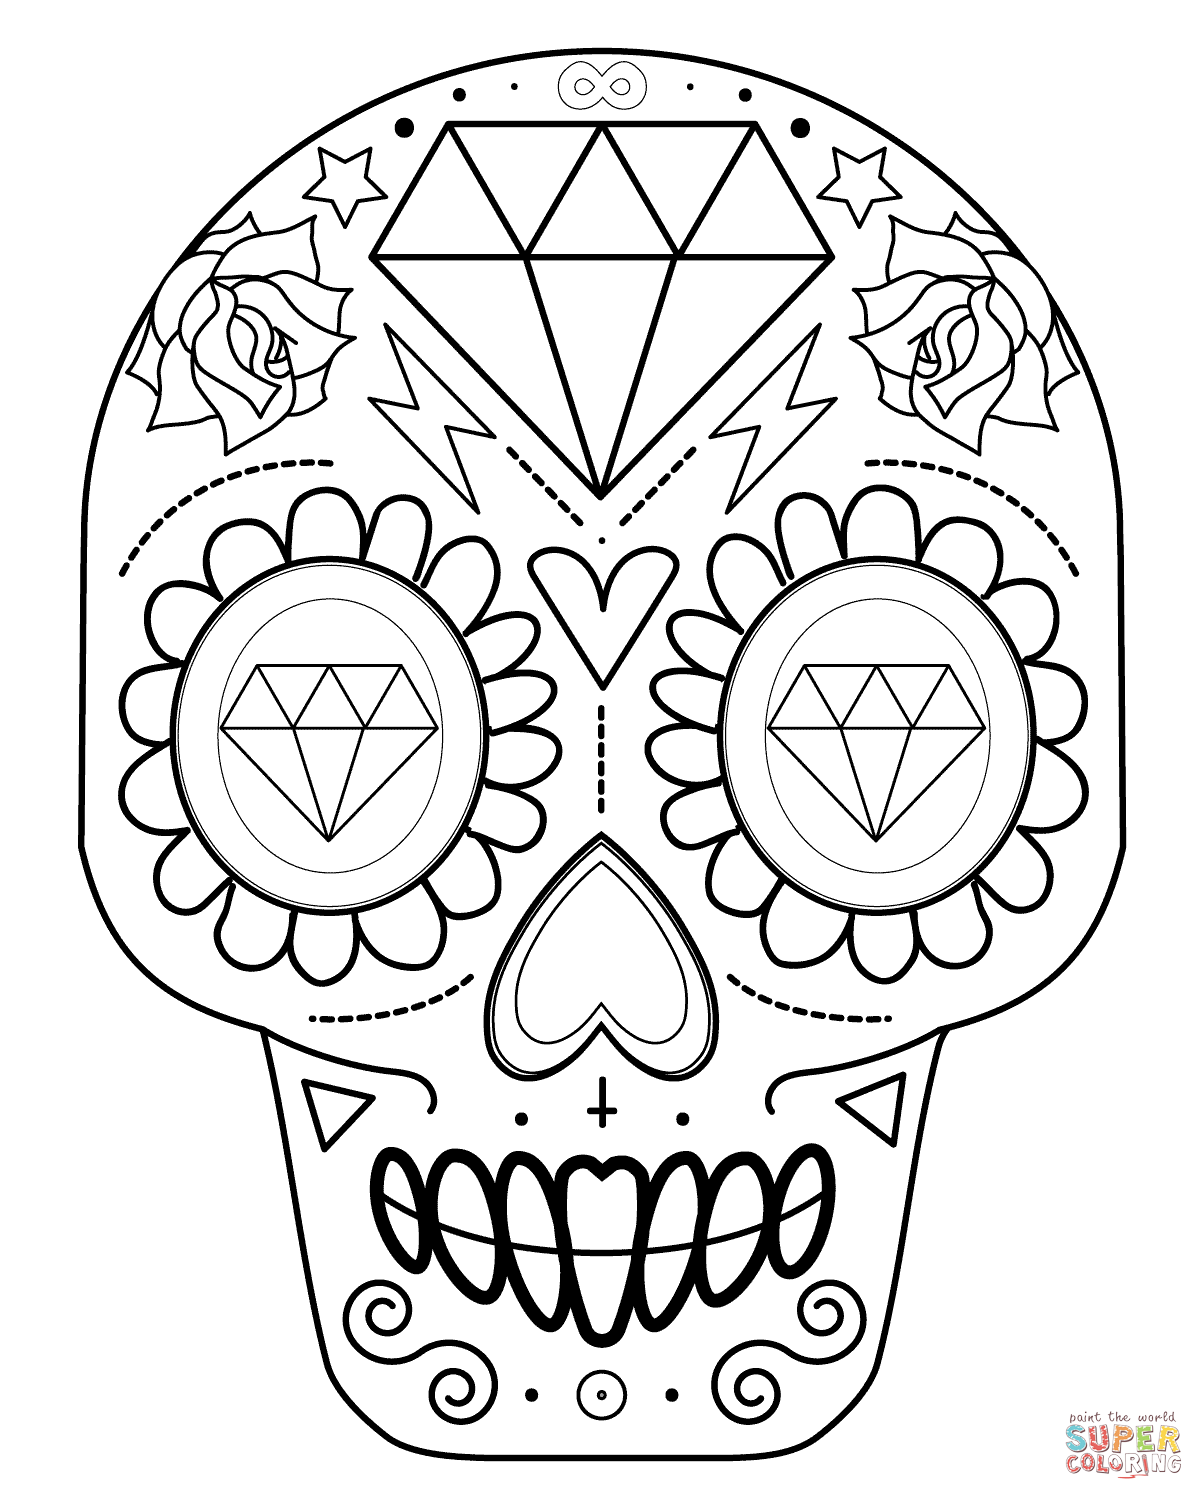 Easy Sugar Skull Coloring Pages - Coloring Home